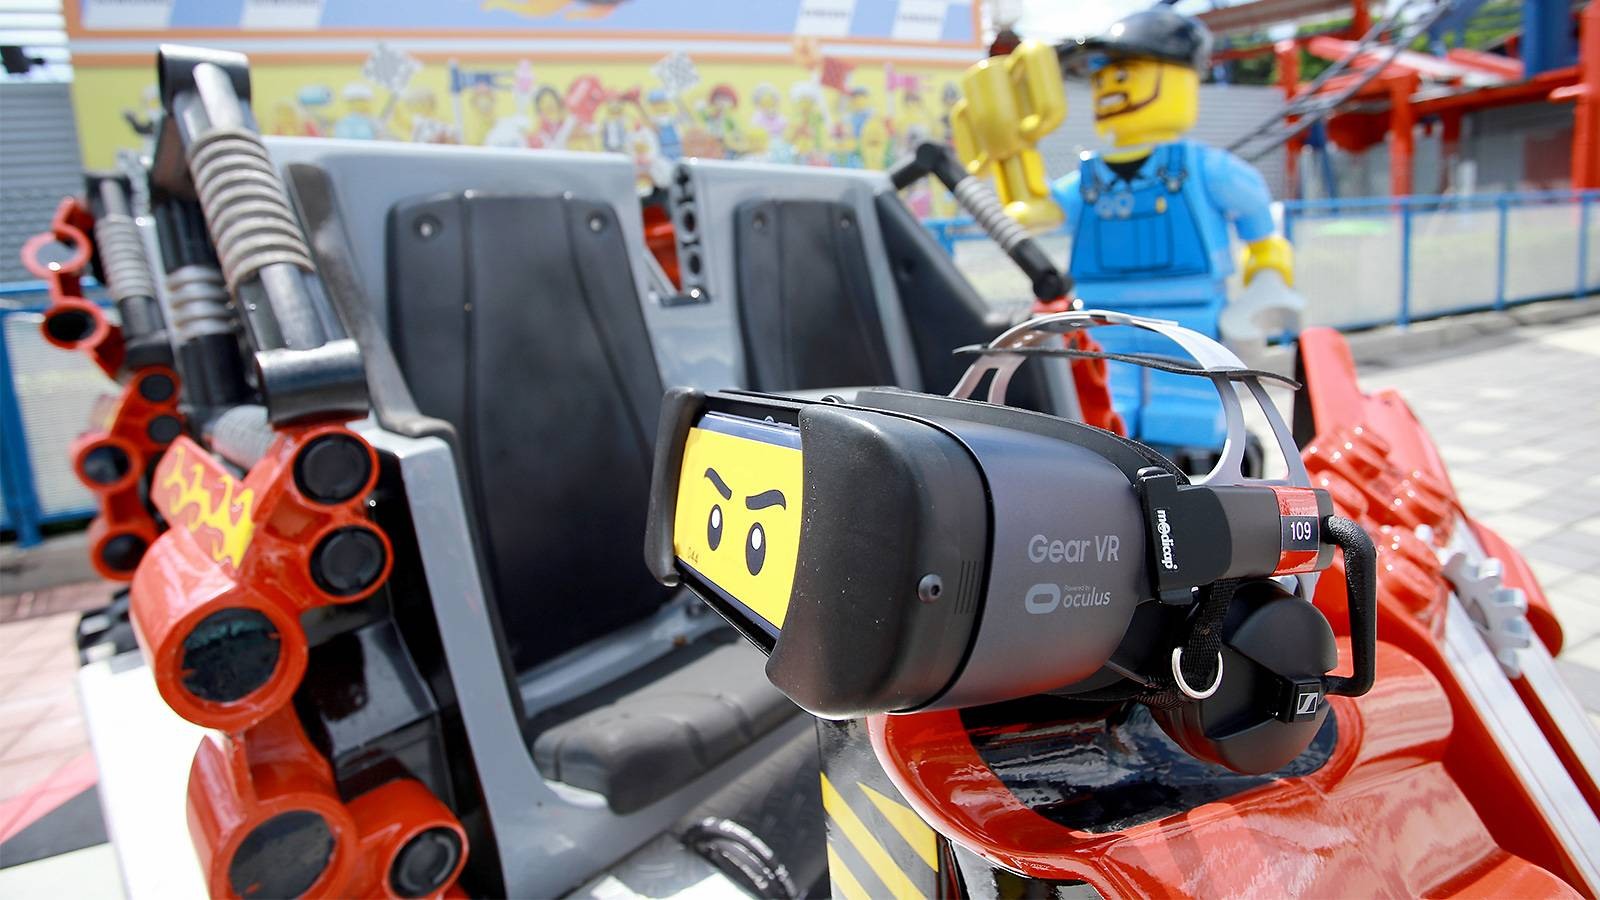 6 exciting reasons to try this new ride at LEGOLAND ...